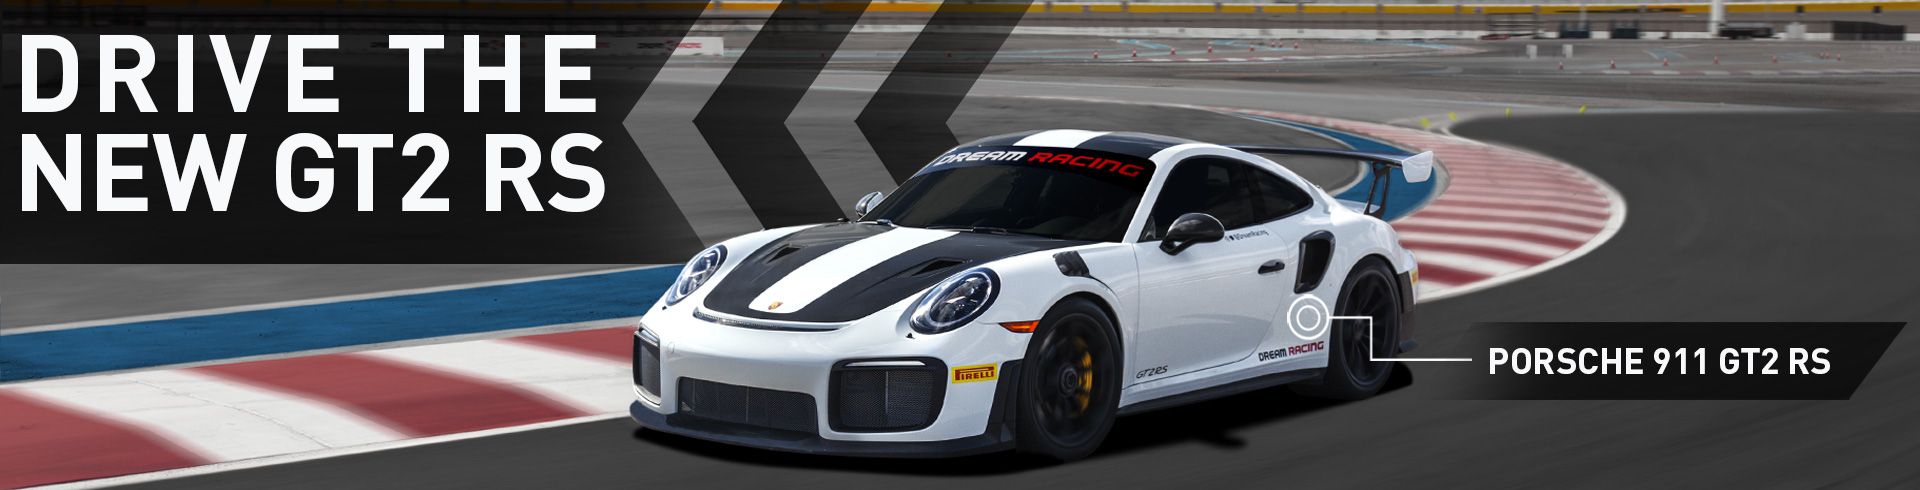 Drive The New GT2 RS